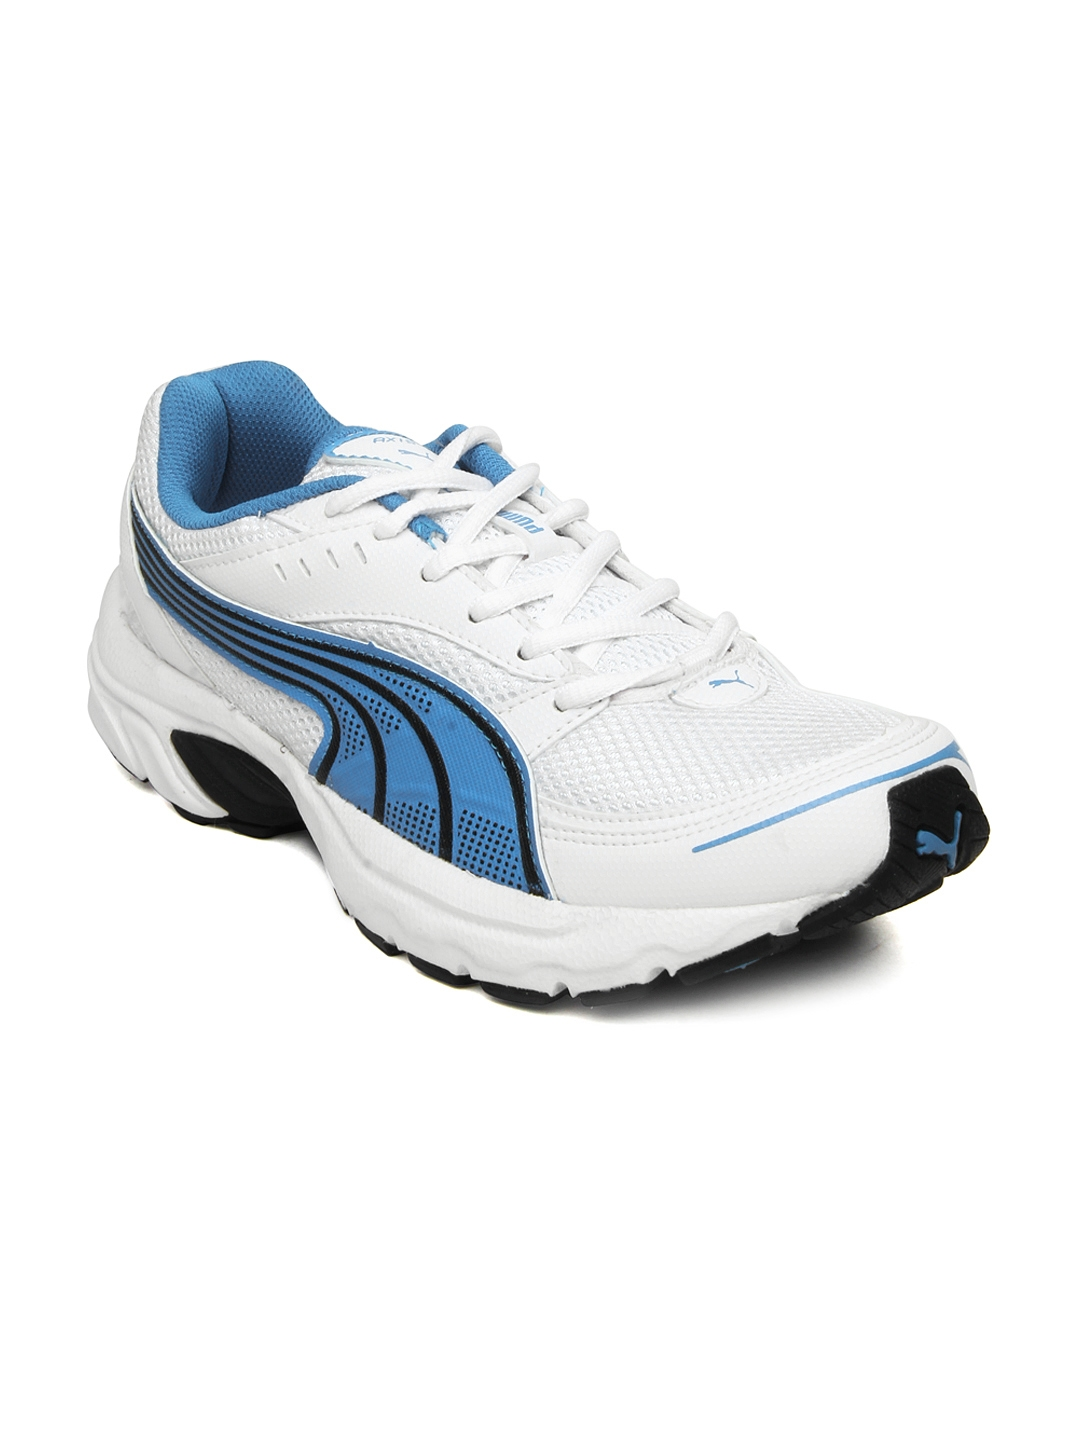 Buy Puma Men White Axis III DP Sports Shoes - Sports Shoes for Men ... 28216626f9